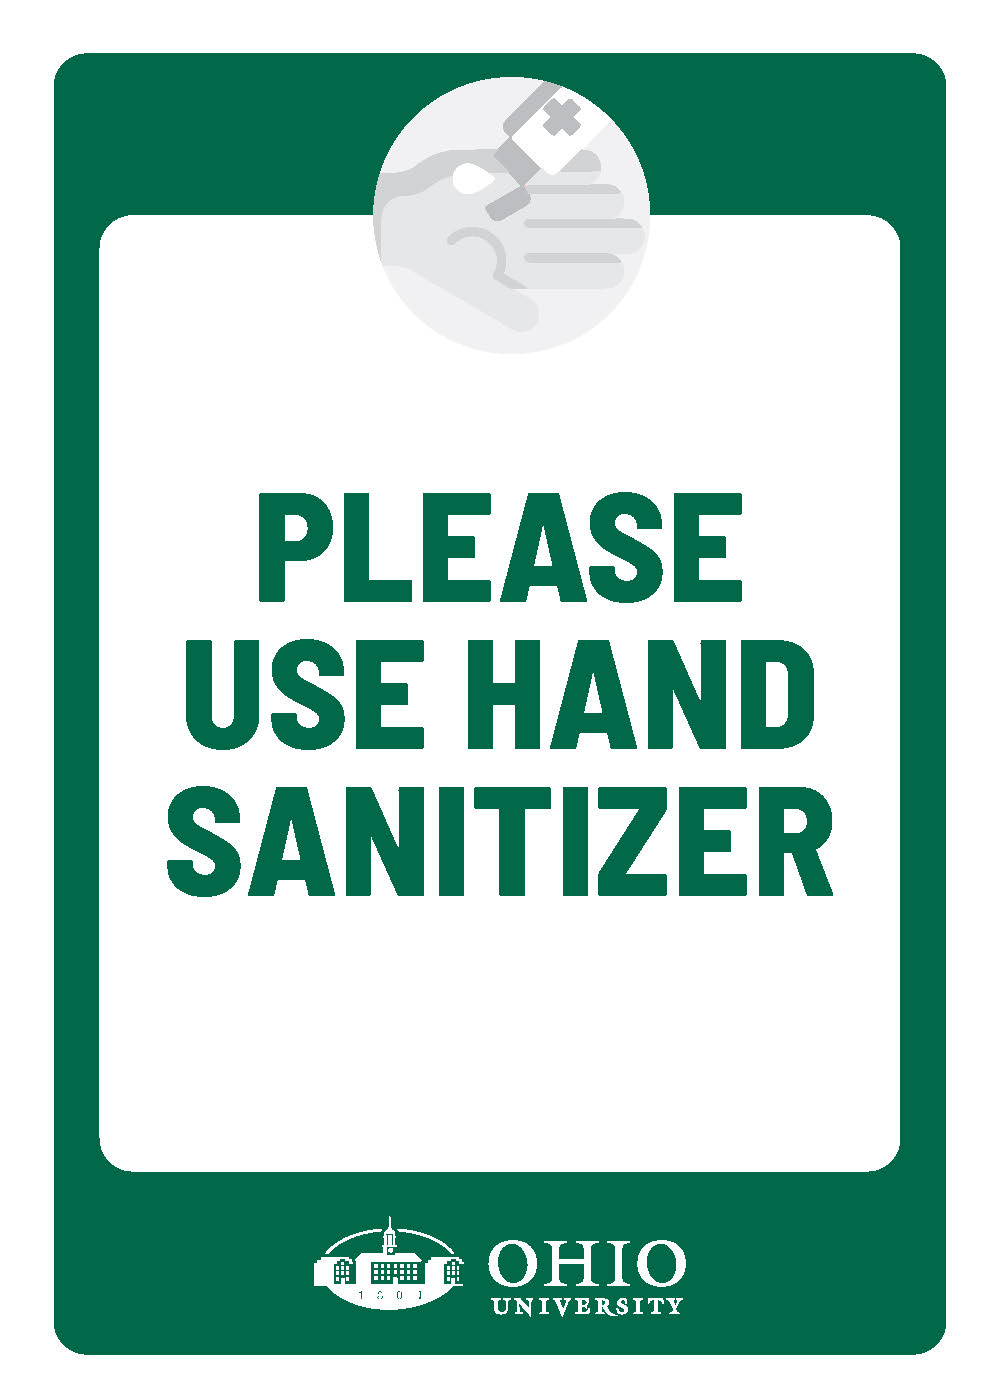 Sign that says: Please use hand santizer